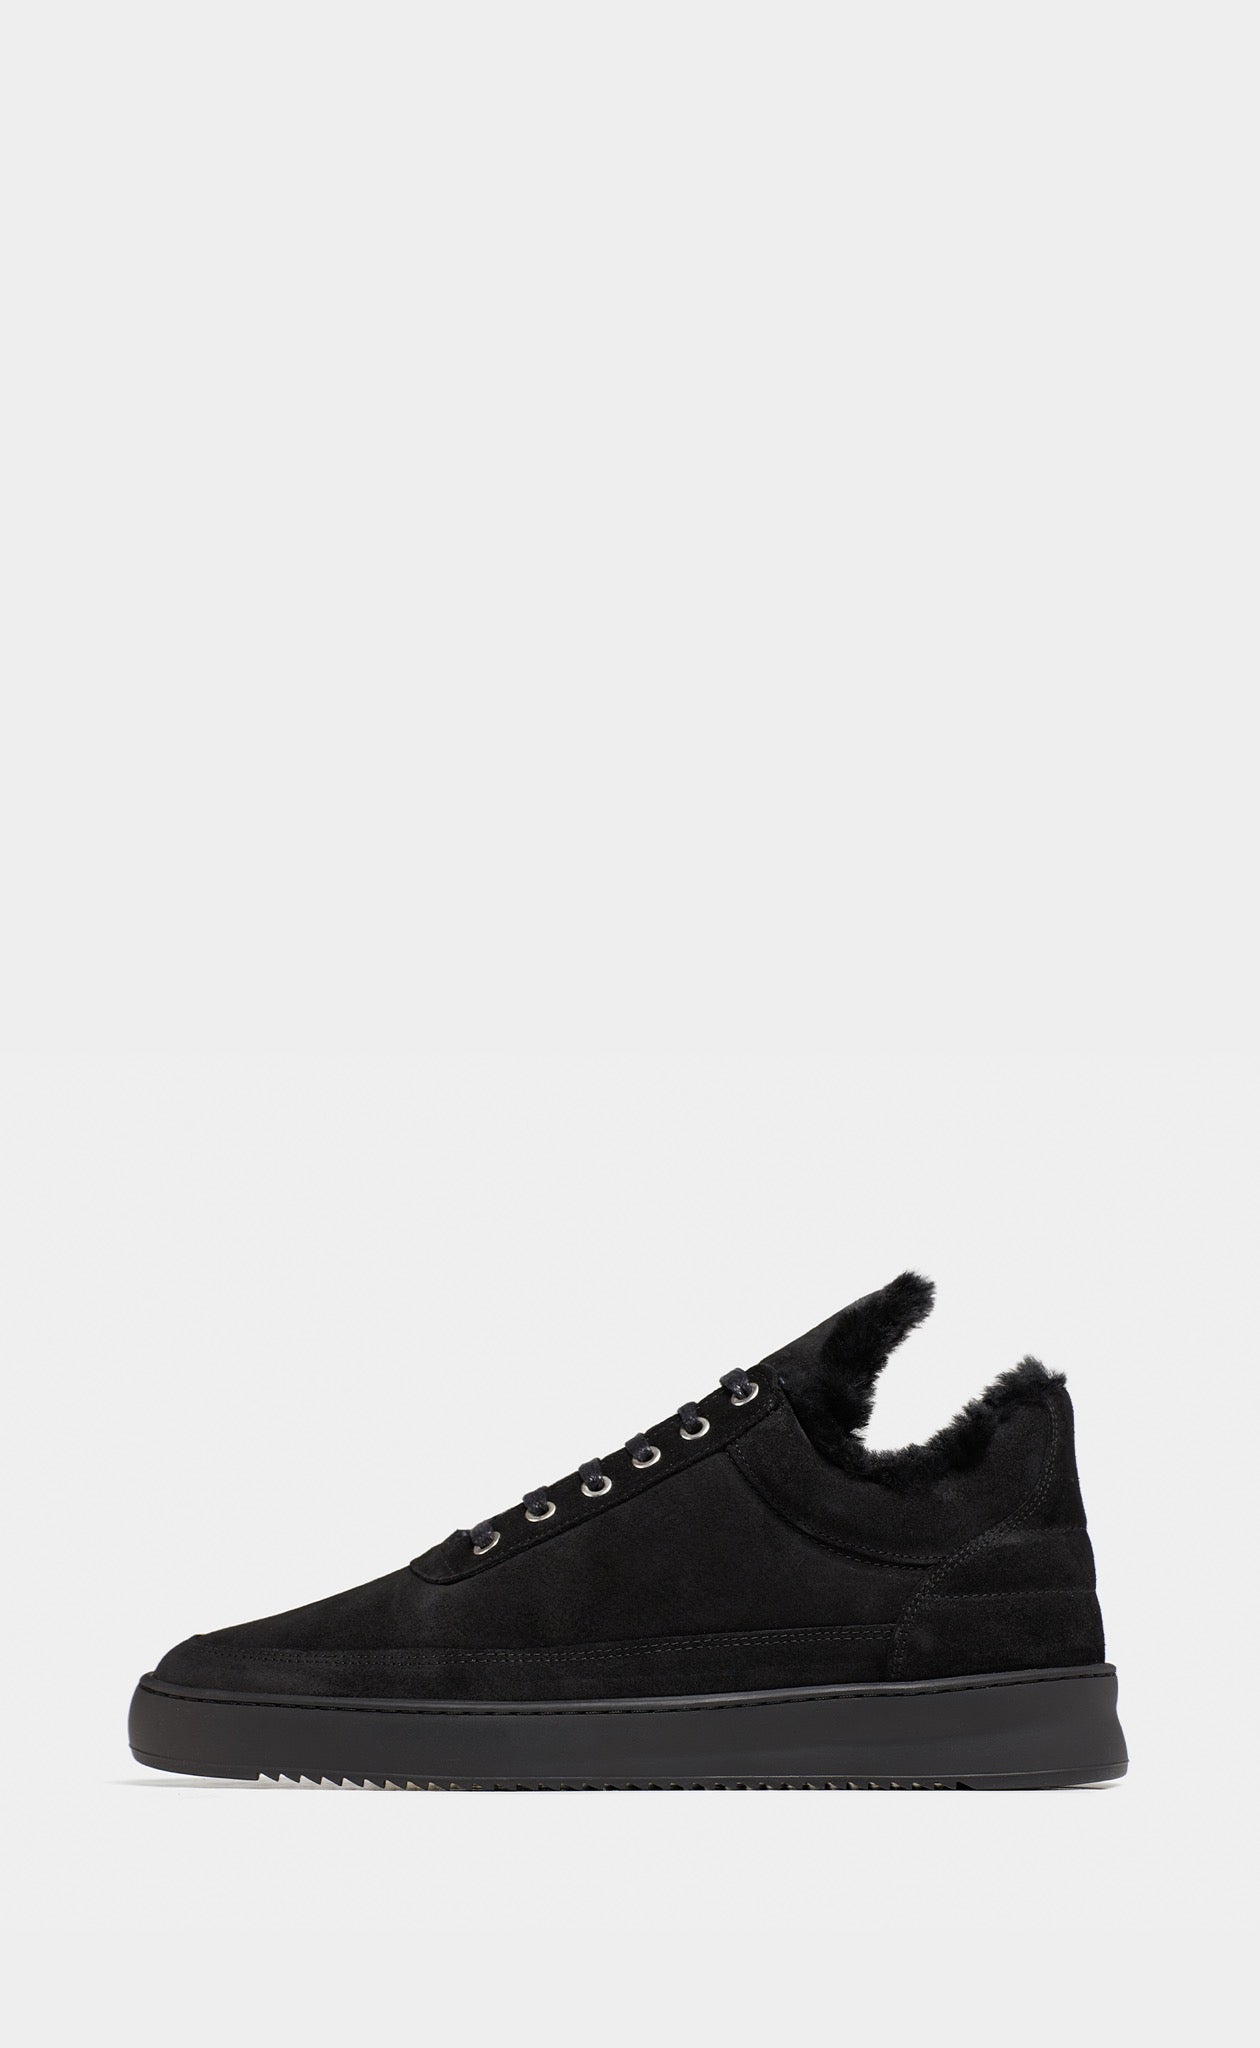 Low Top Ripple Tinza All Black